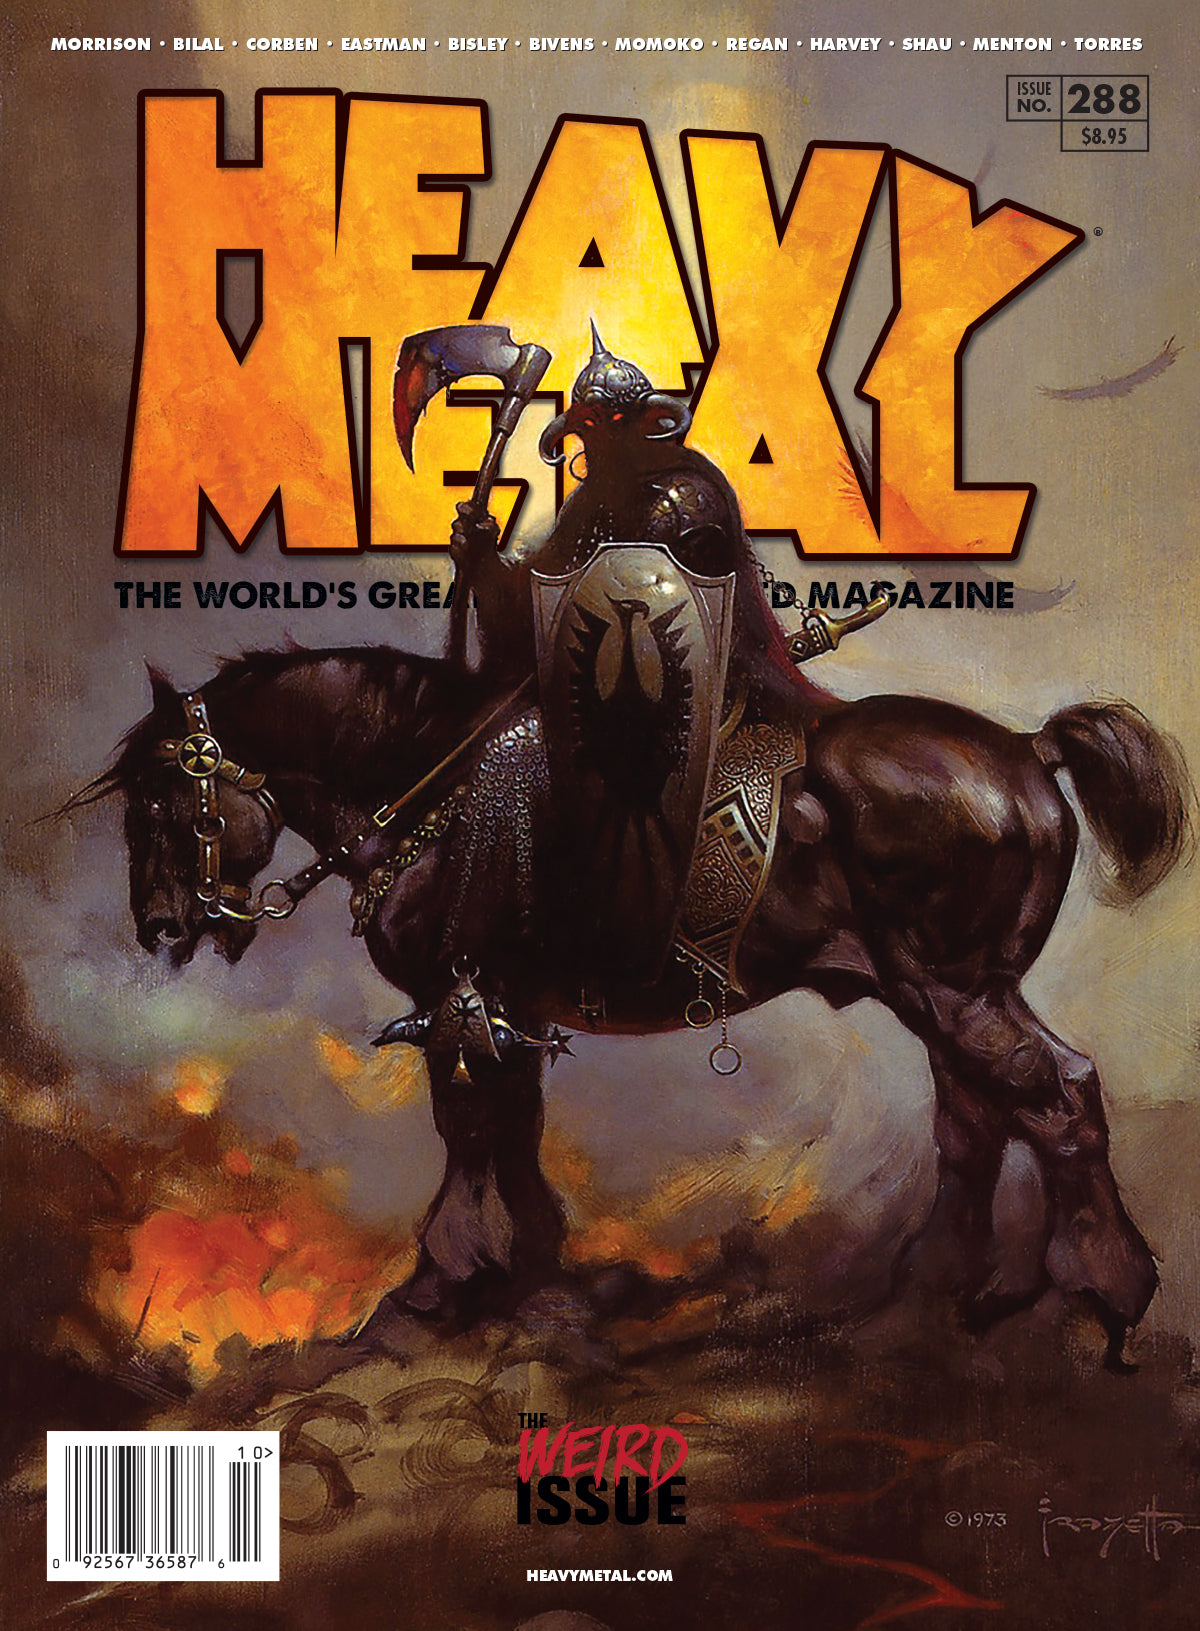 Issue #288 - Cover A - Frazetta